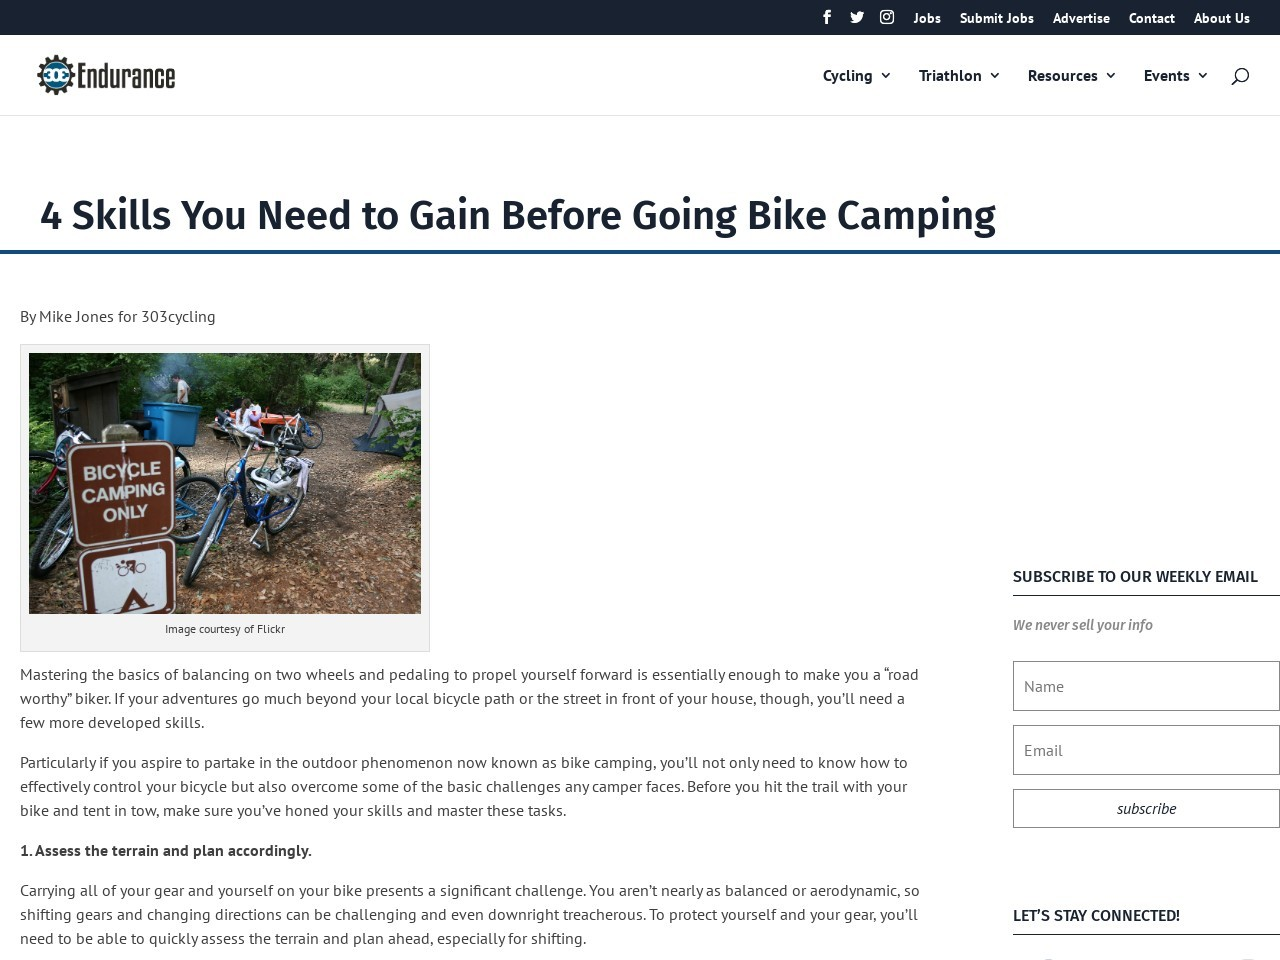 4 Skills You Need to Gain Before Going Bike Camping